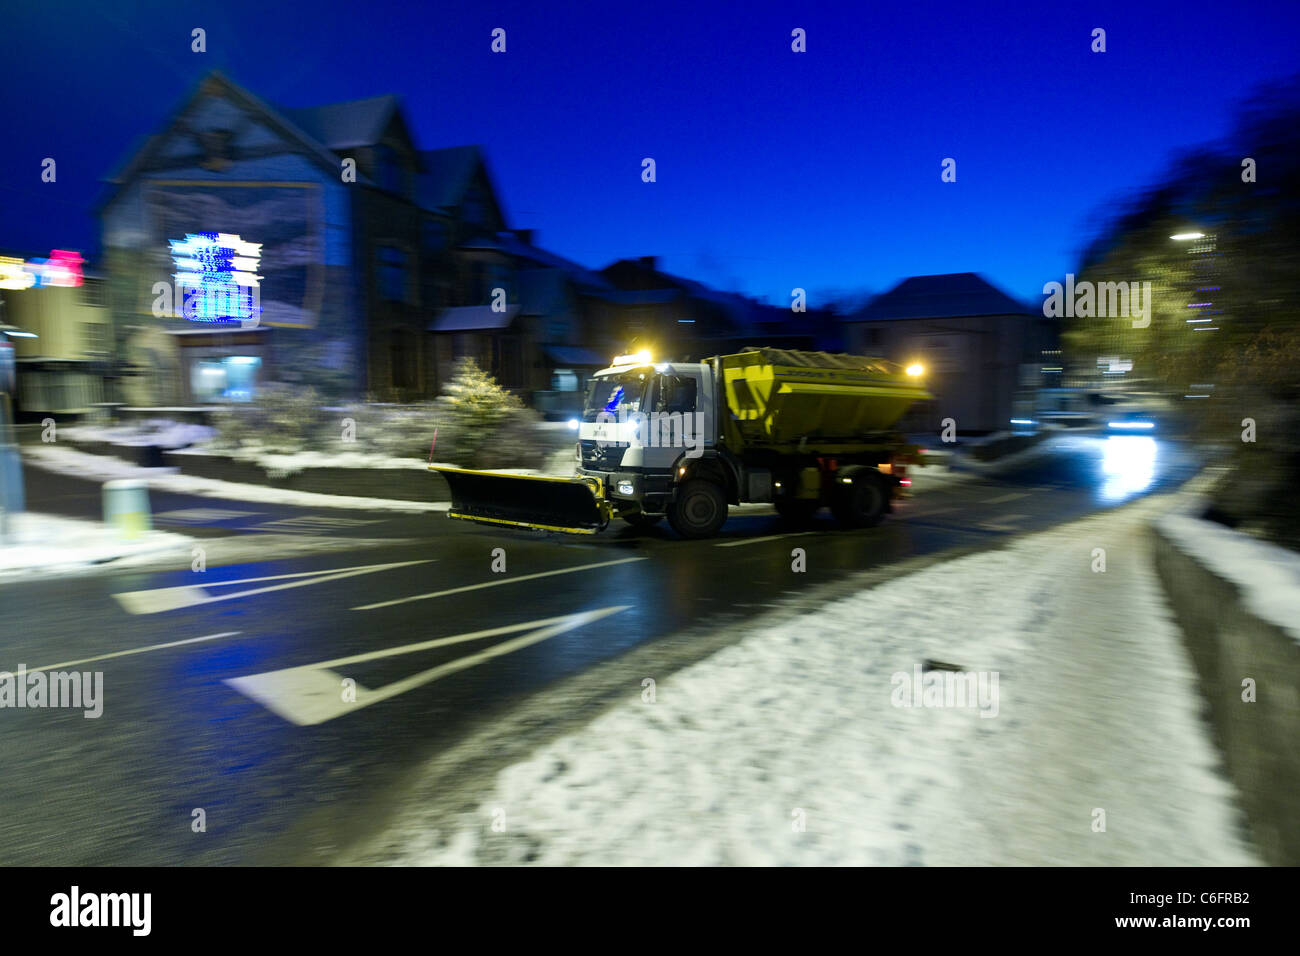 A snow plough gritter from Powys county council grits the roads around the centre of Builth Wells. - Stock Image